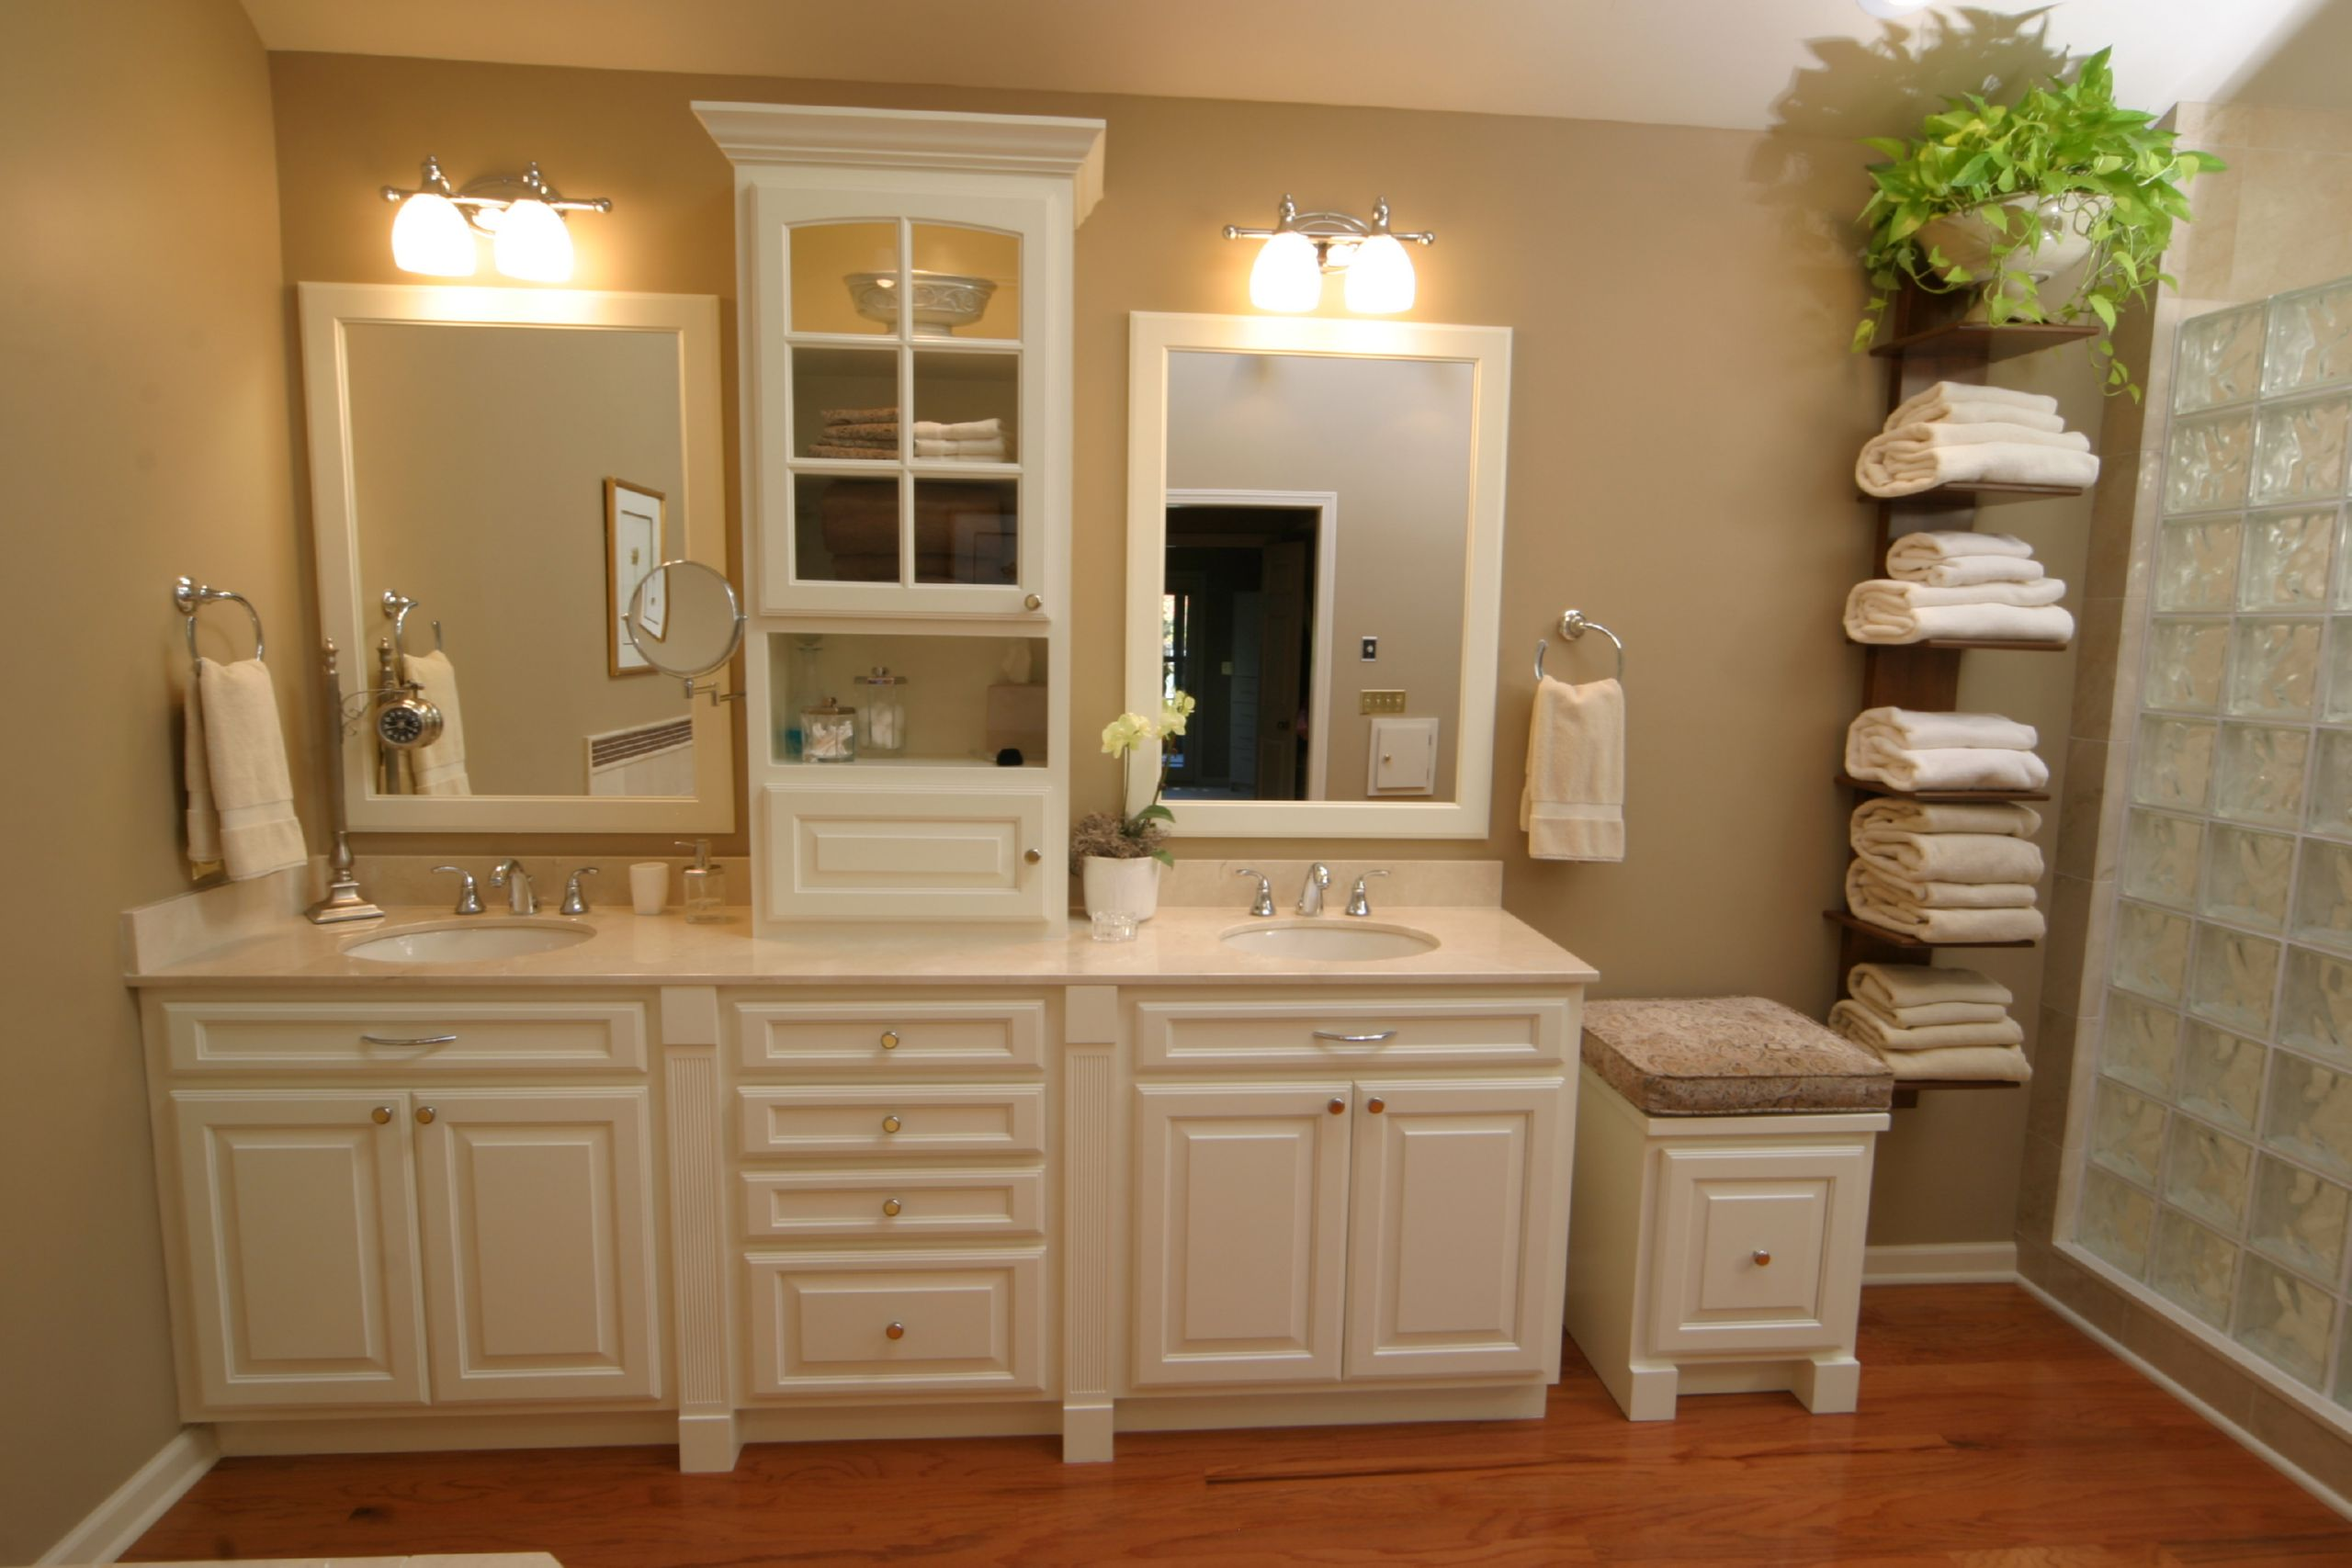 Bathroom remodeling bath remodel contractor for Home remodeling ideas bathroom